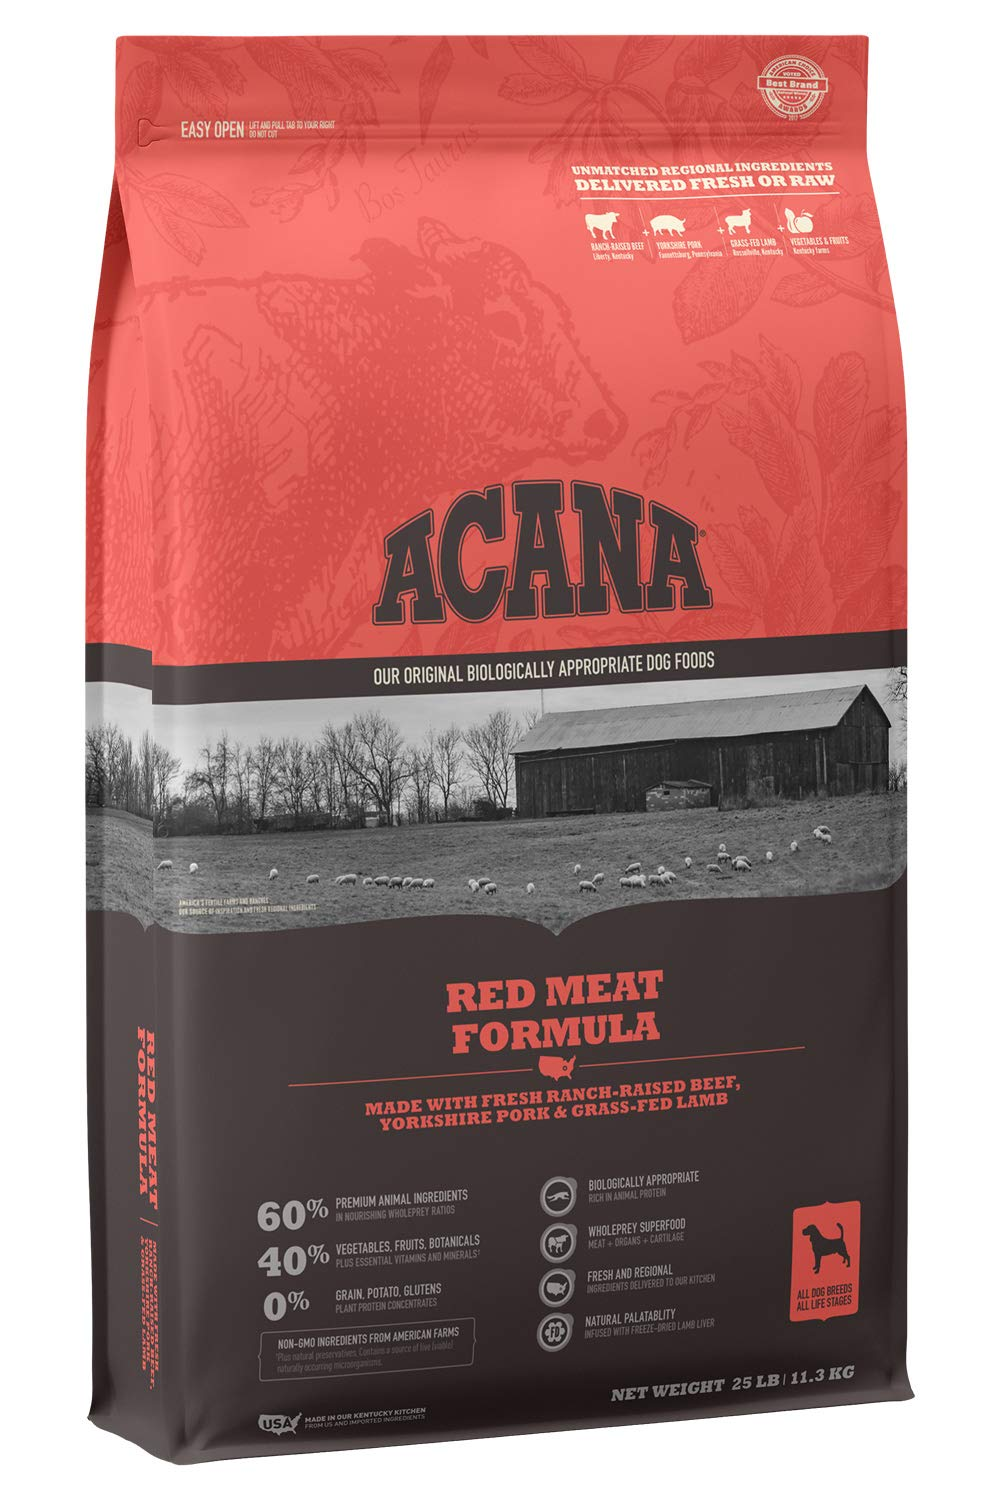 ACANA Heritage Dry Dog Food, Red Meat, Biologically Appropriate & Grain Free by ACANA